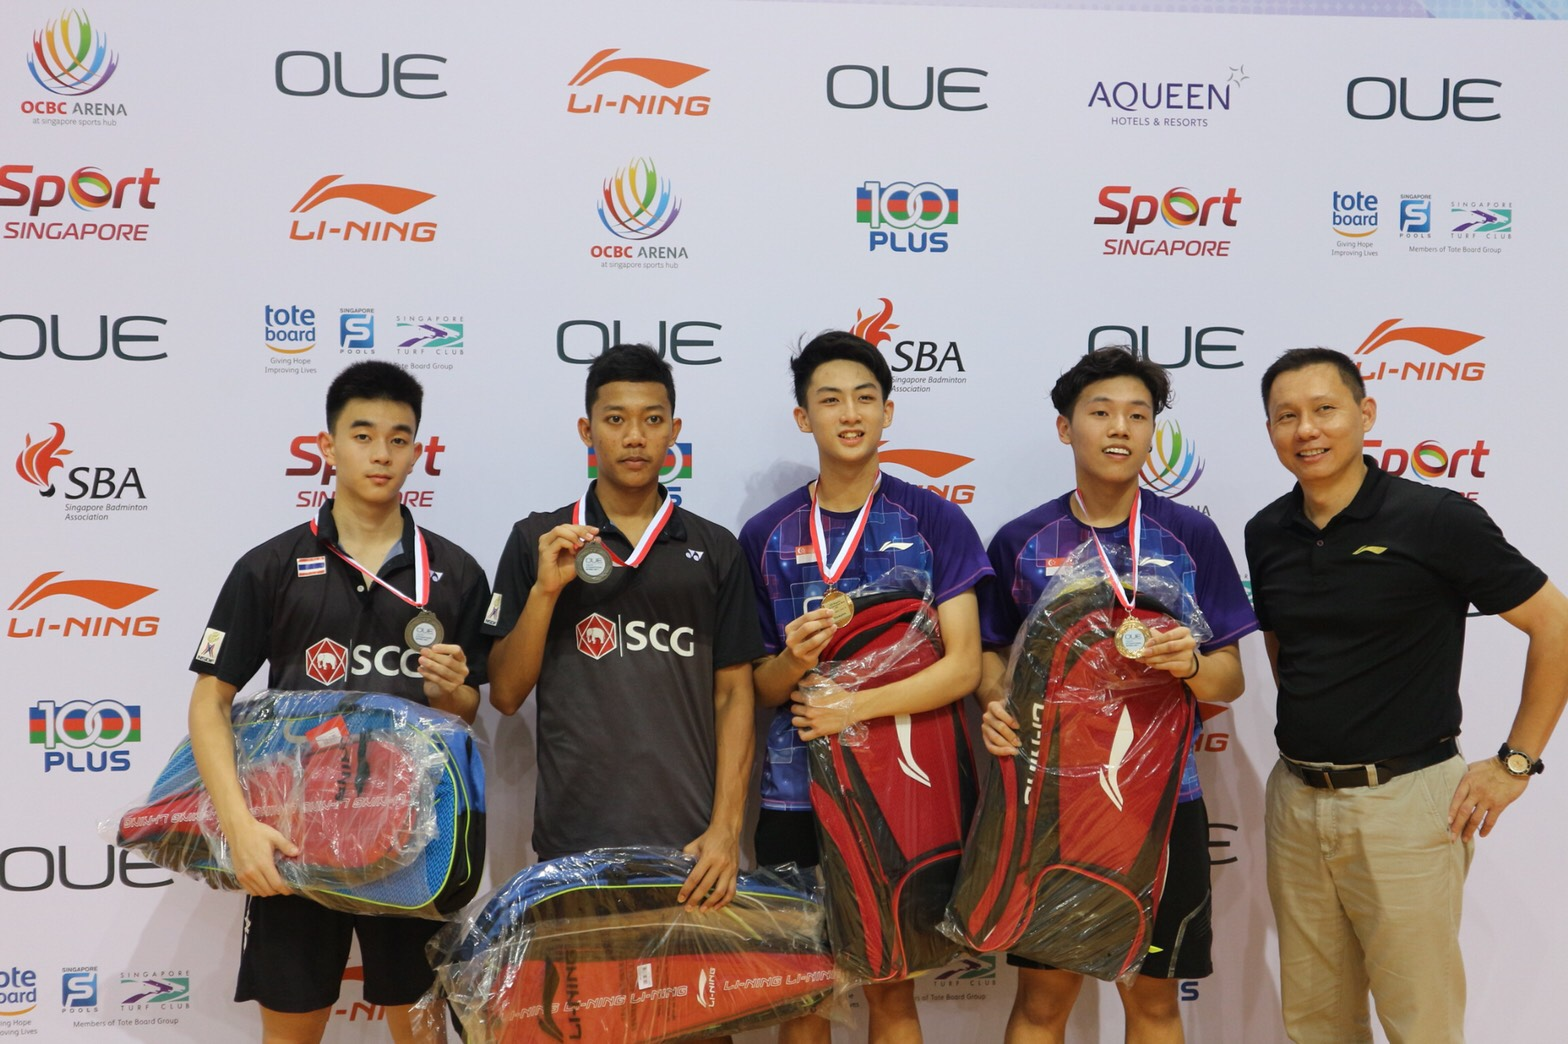 ไทยคว้าแชมป์ OUE Singapore Youth International Series 2017